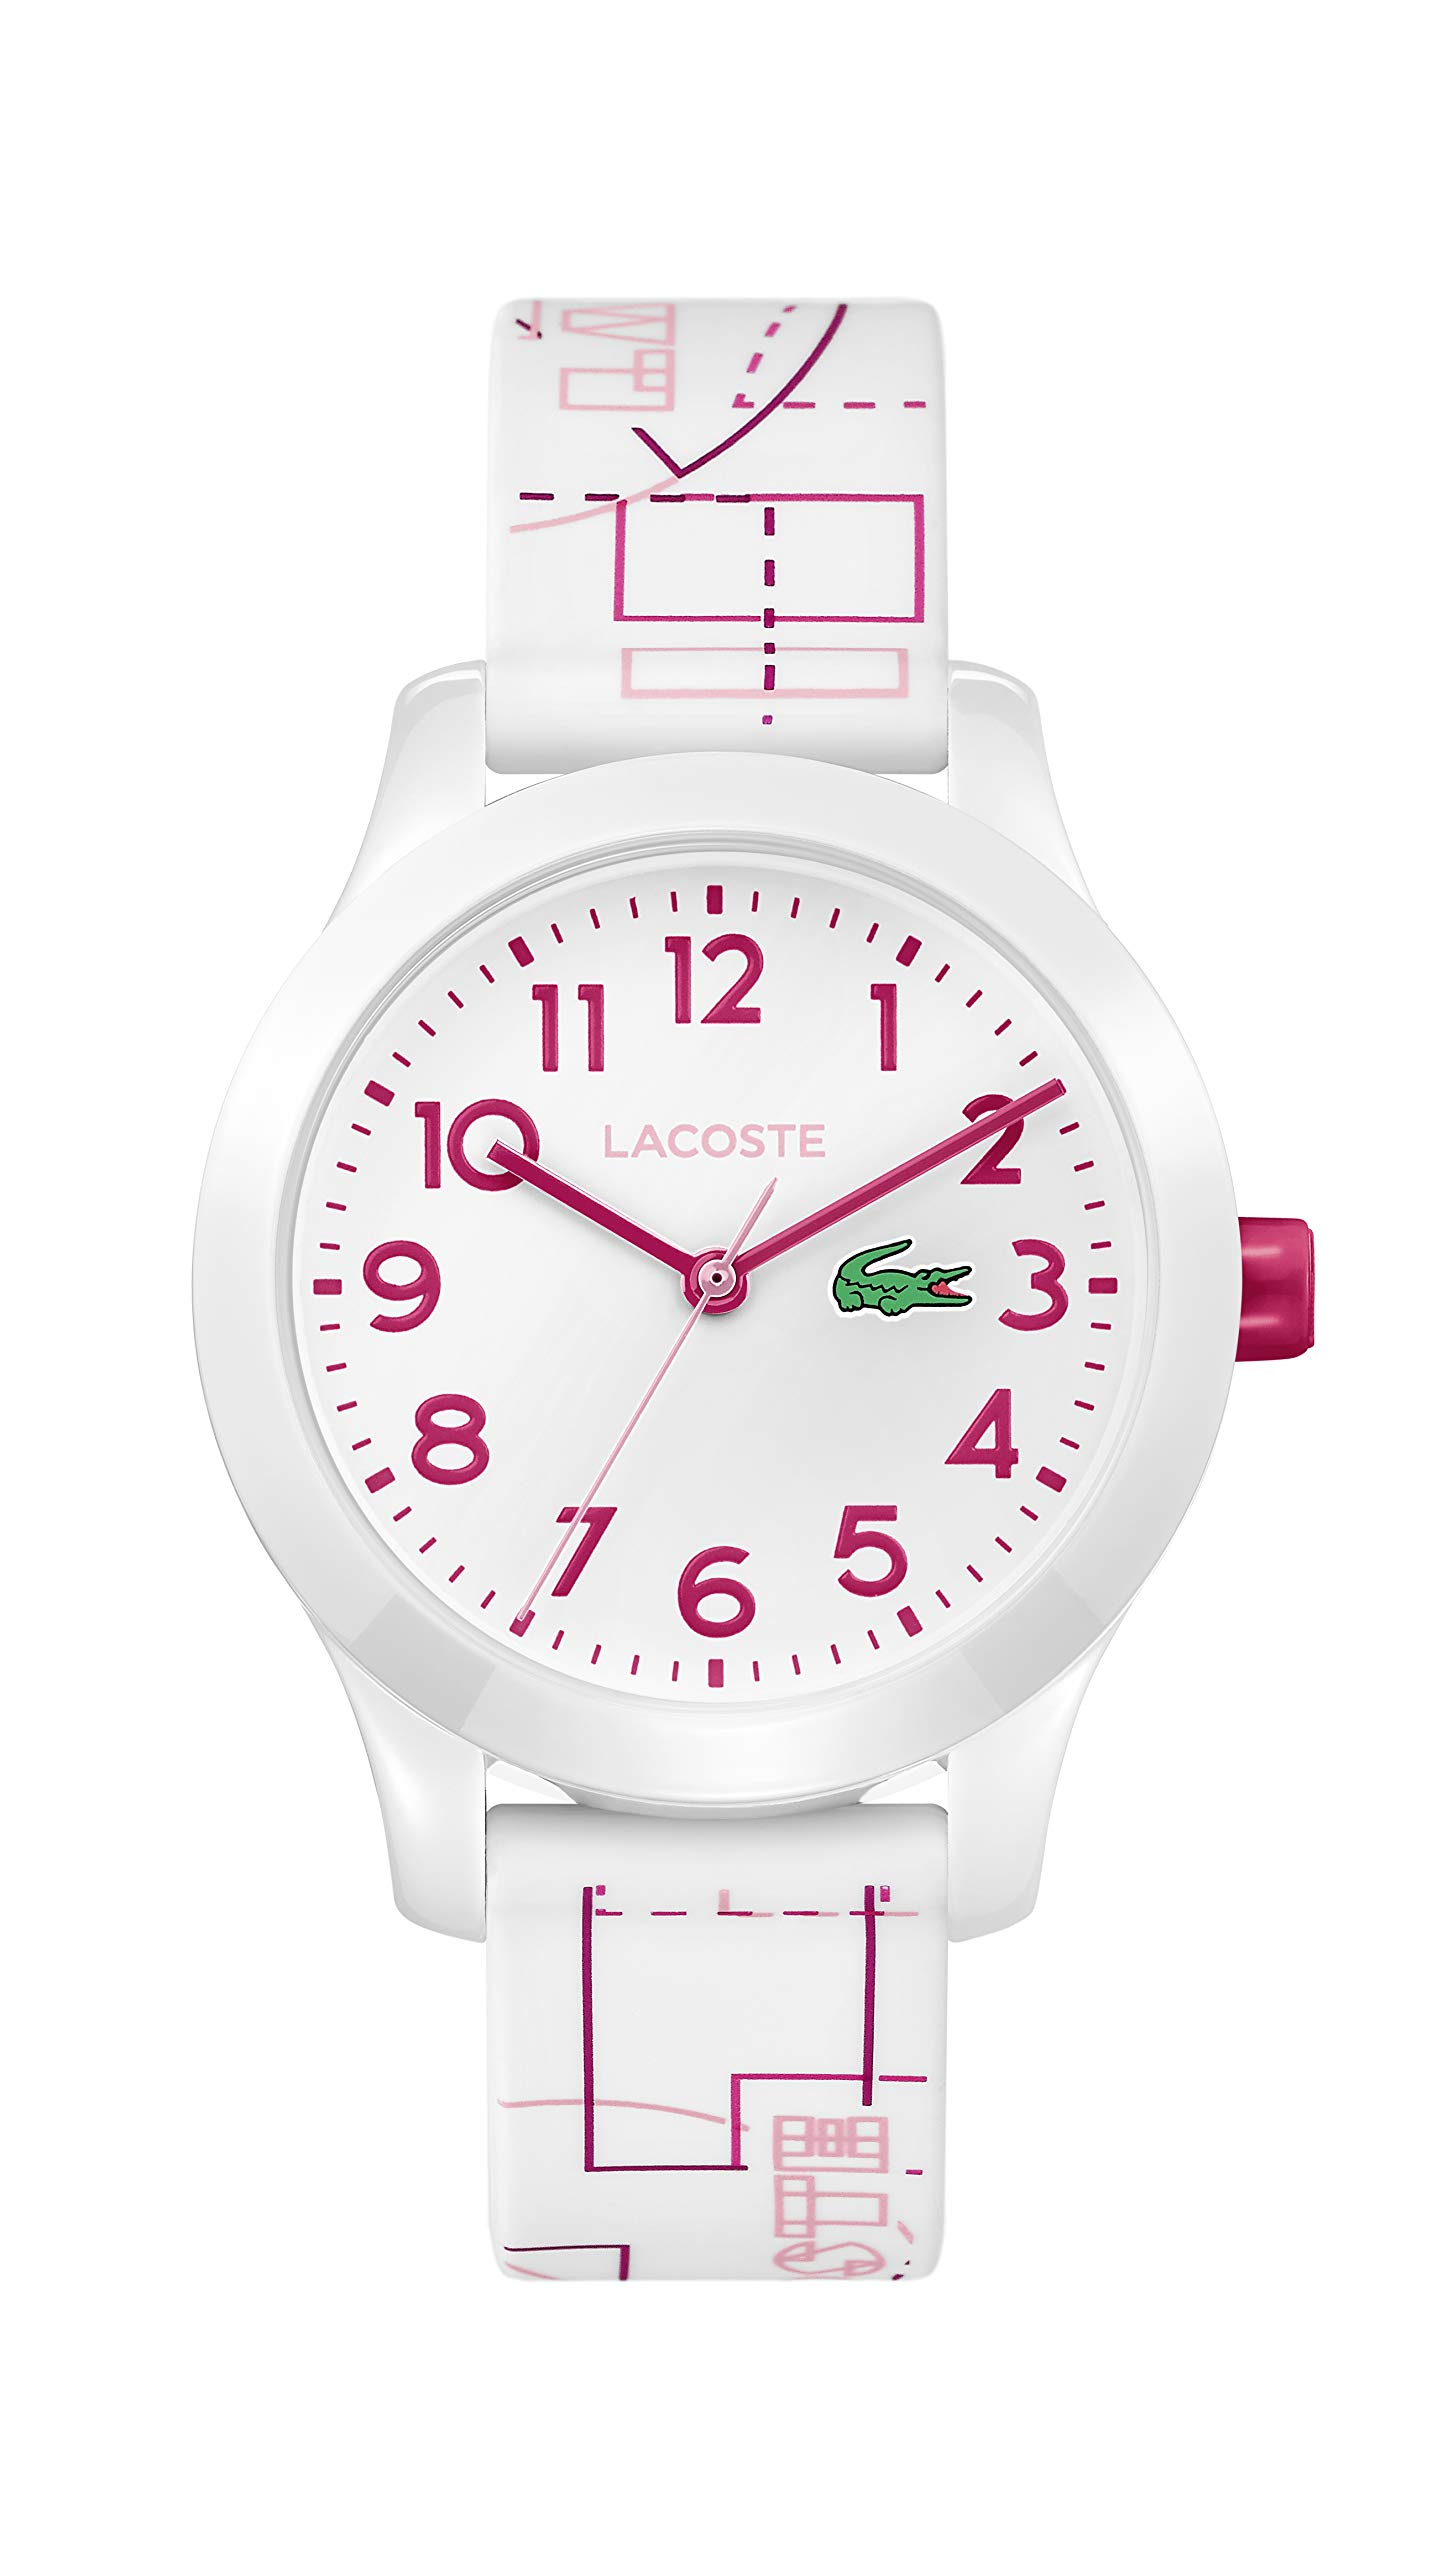 Lacoste Kids' TR90 Quartz Watch with Rubber Strap, White, 14 (Model: 2030009) by Lacoste